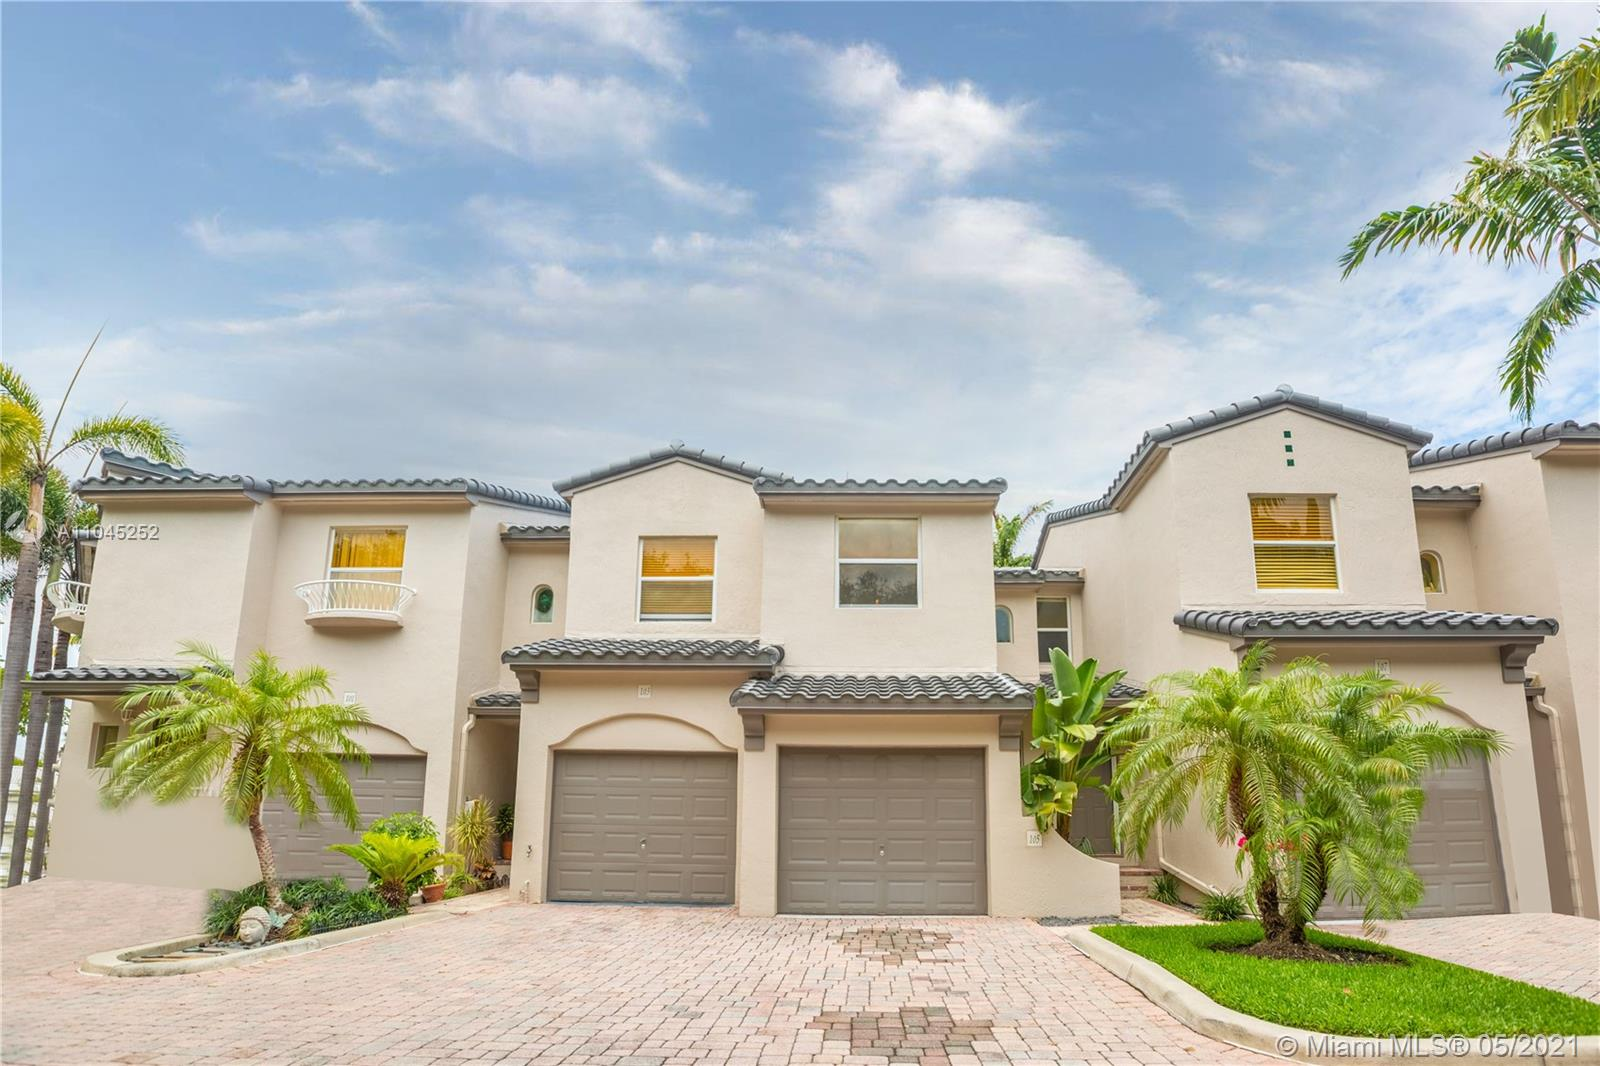 Spacious 3 Bedroom/2.5 Bathroom Townhome Located in the Oceanwalk Villas Condo. Located Right Across the Street From the Ocean, This Townhome Features an Open Kitchen with Bar Seating with a Combo Dining and Family Room. Tiled First Floor, Carpeted Second Floor. 1 Car Garage with Room For a Second Car. Good Size Bedrooms with Walk in Closets. Master Bath Features His and Her Sinks, Separate Tub and Shower. Location Offers Easy Access to All Major Roadways, Shopping, Public Parks, Dining, Public Transportation, The Beaches and Much More. To help visualize this home's floorplan and to highlight its potential, virtual furnishings may have been added to photos found in this listing.